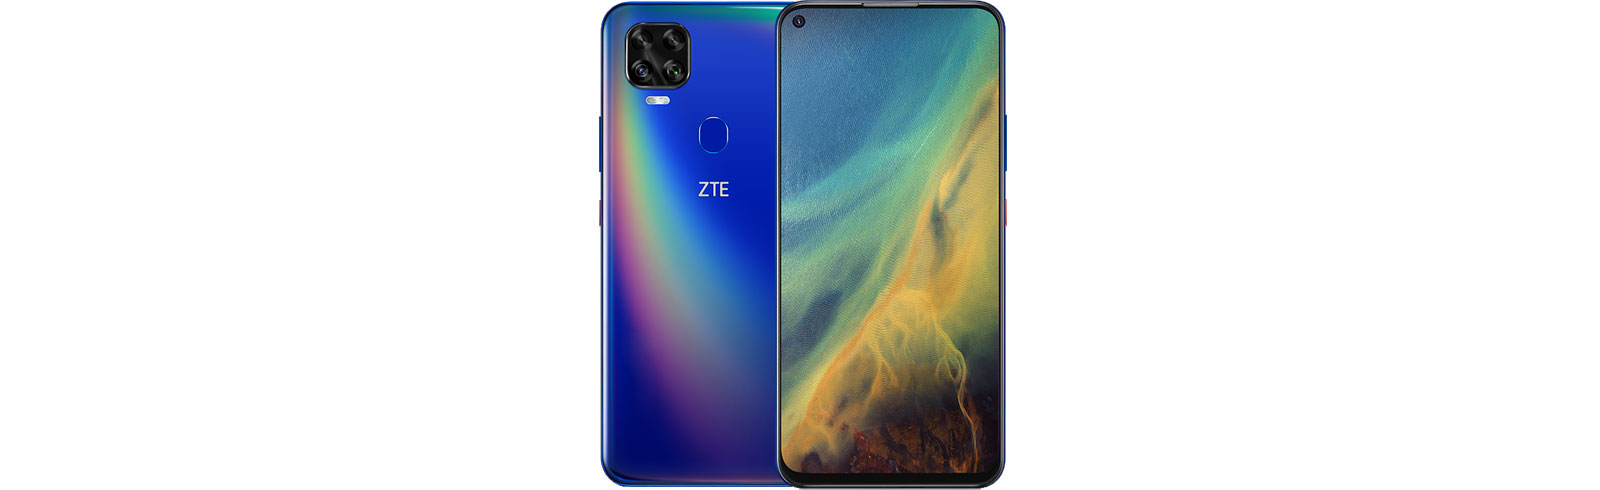 ZTE Blade V2020 5G is unveiled with a Dimensity 800 chipset